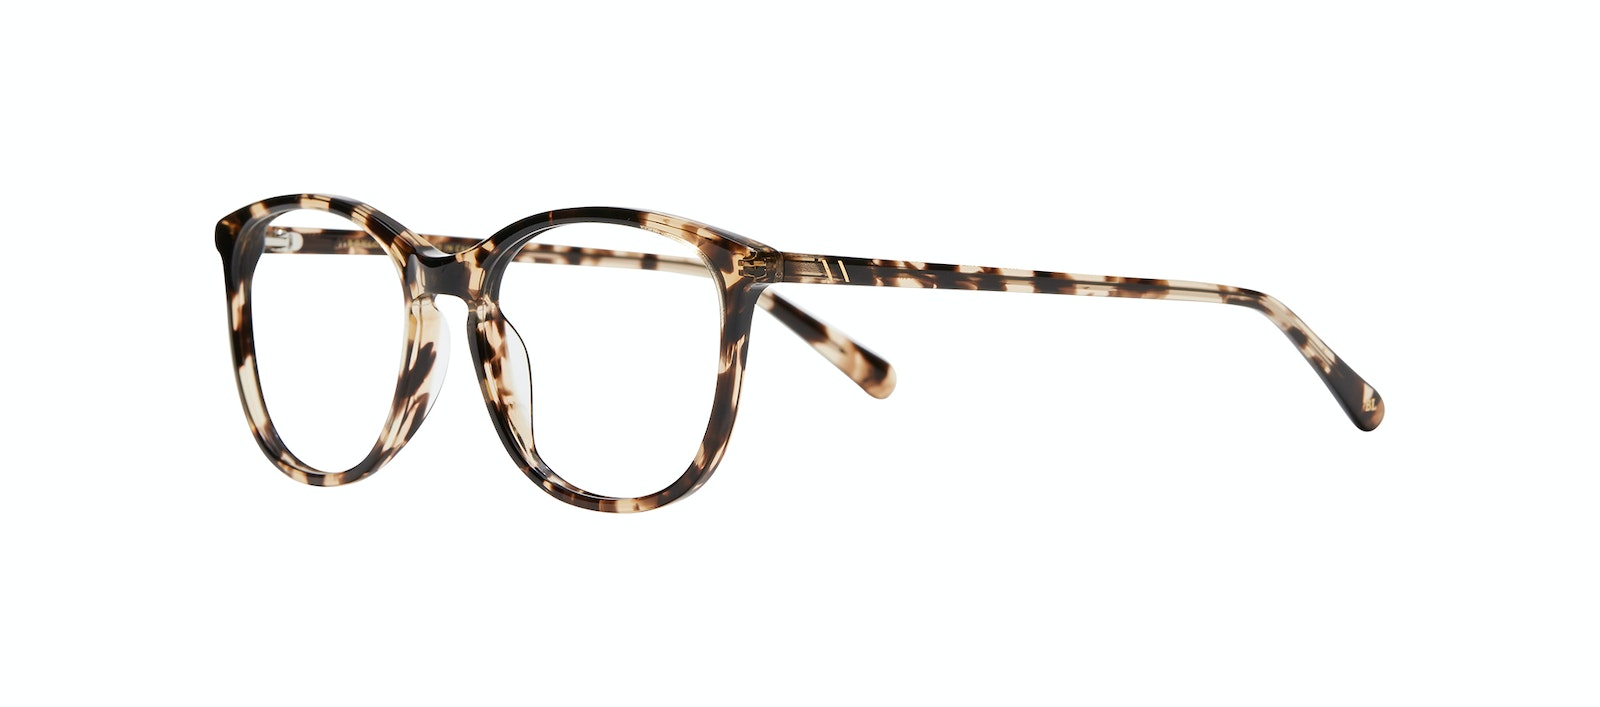 Affordable Fashion Glasses Rectangle Square Round Eyeglasses Women Nadine S Snake Skin Tilt